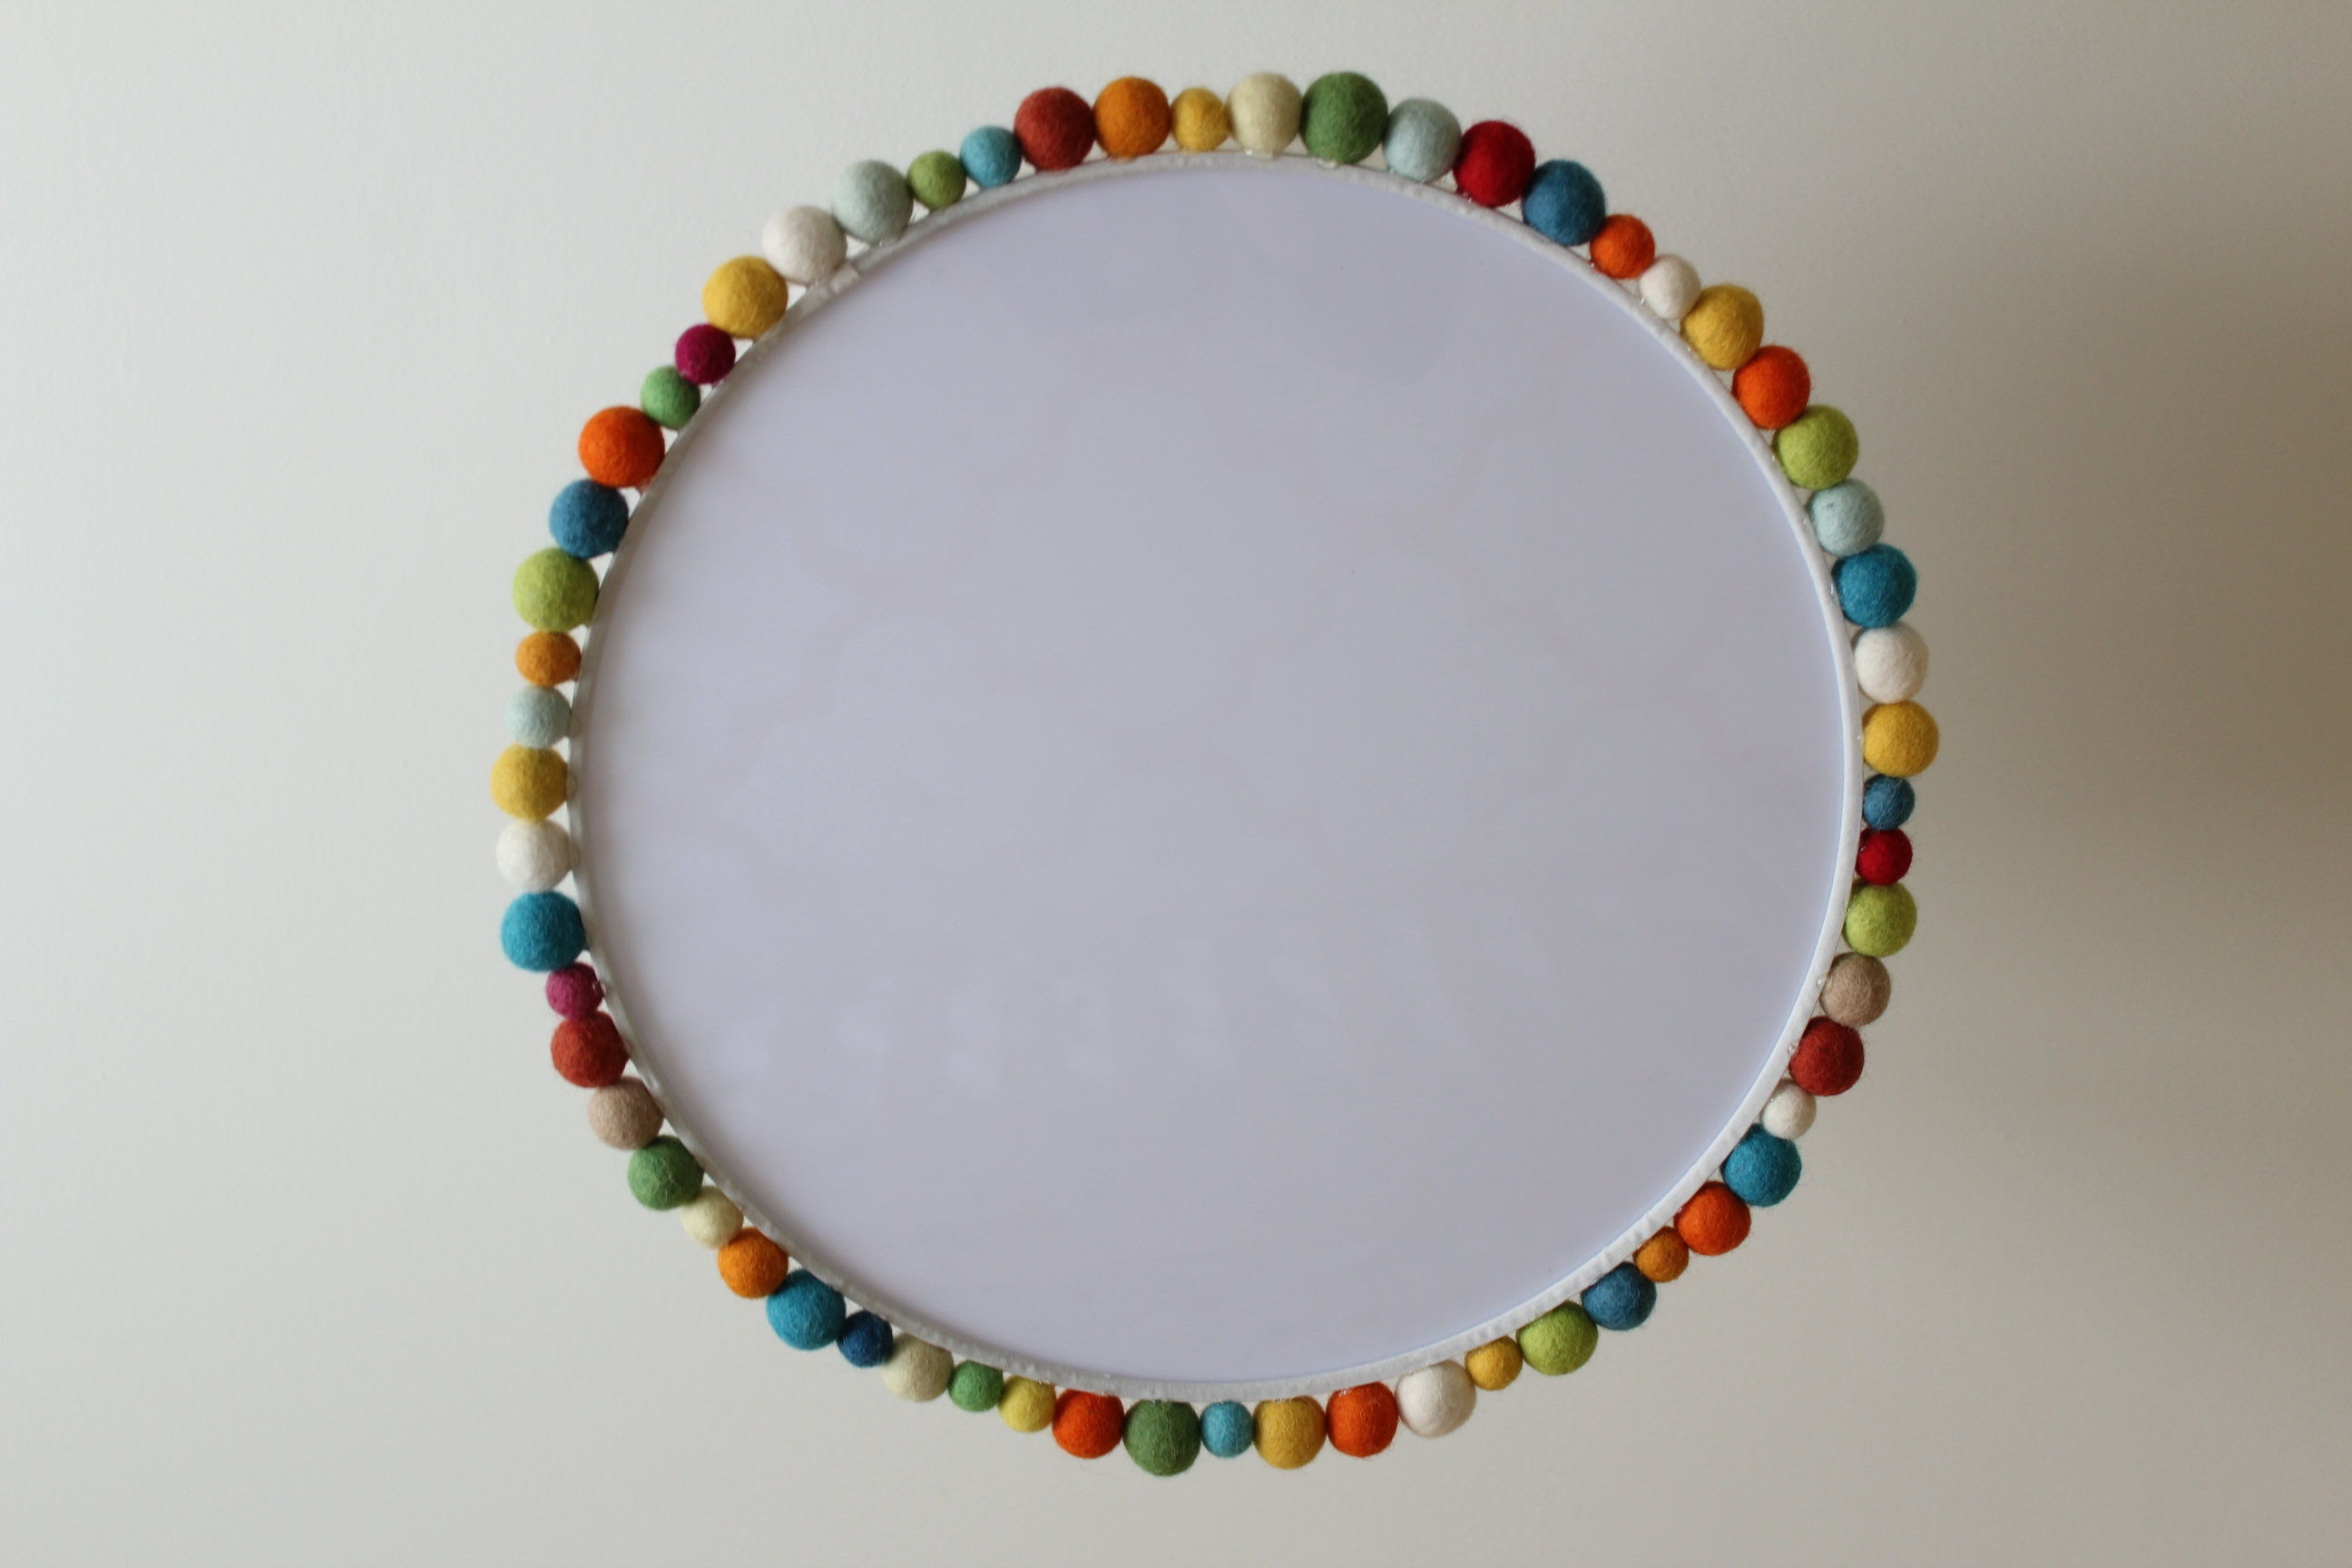 Customized ceiling light drum shade with felt balls